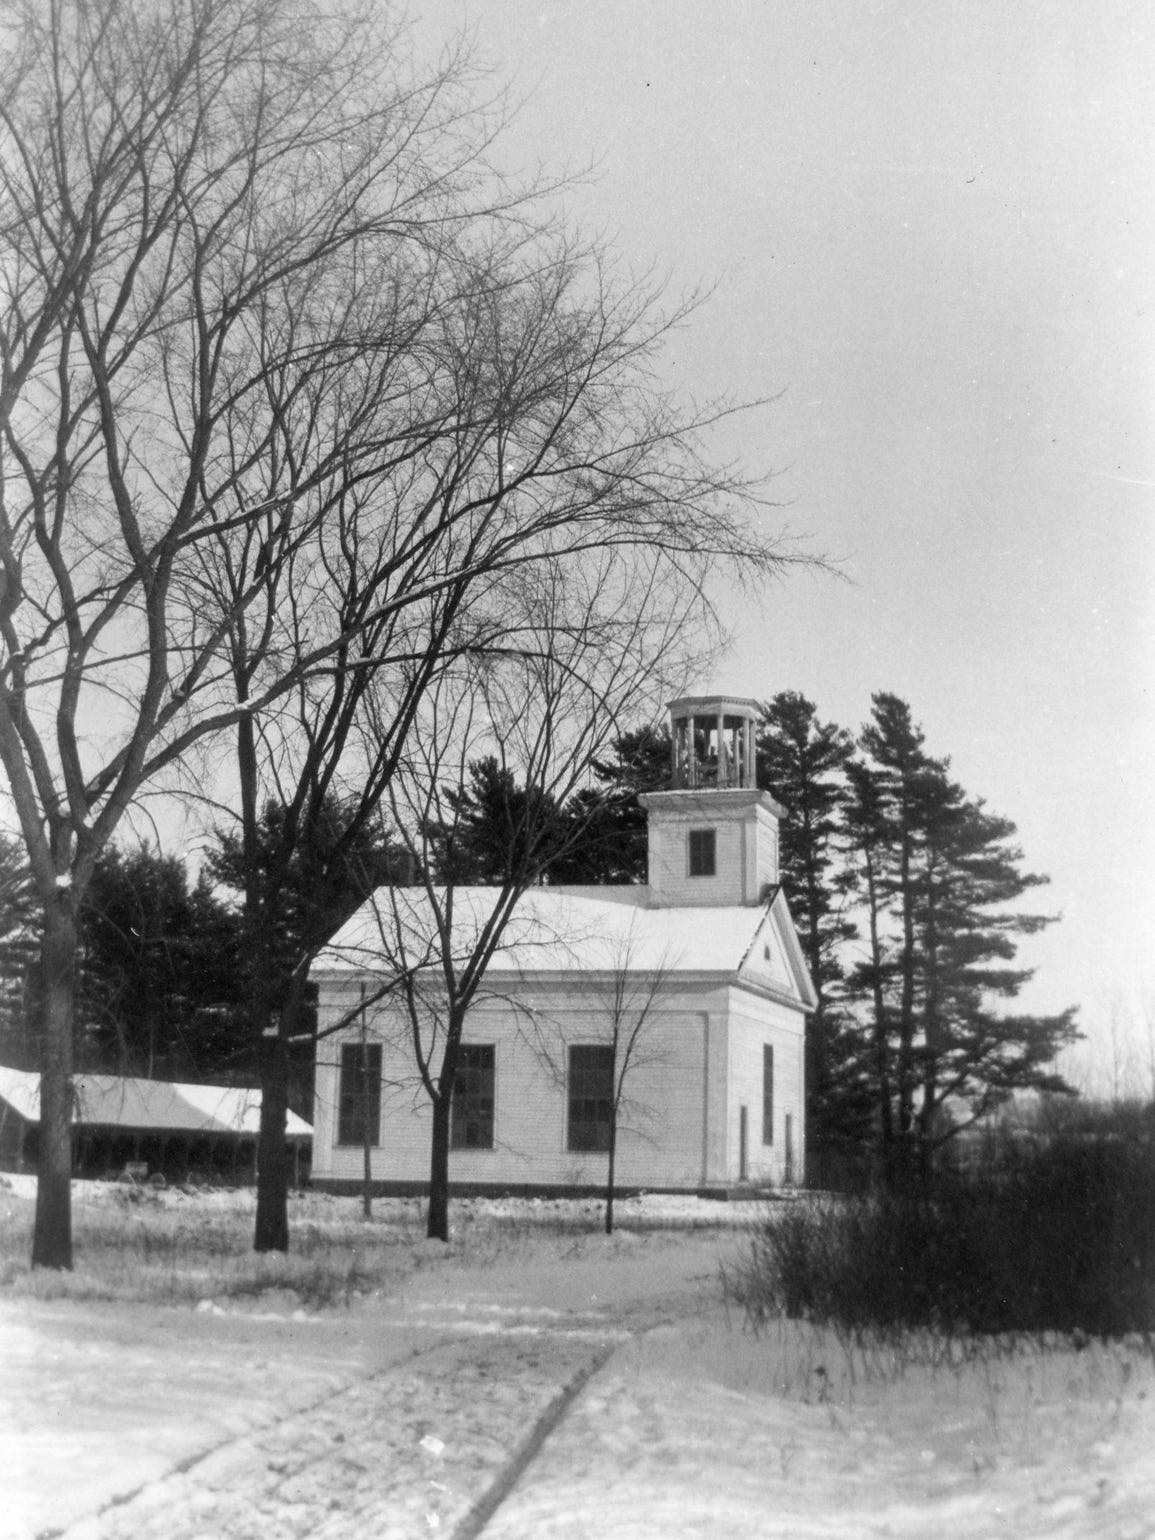 The West Milton Meeting House, also known as the West